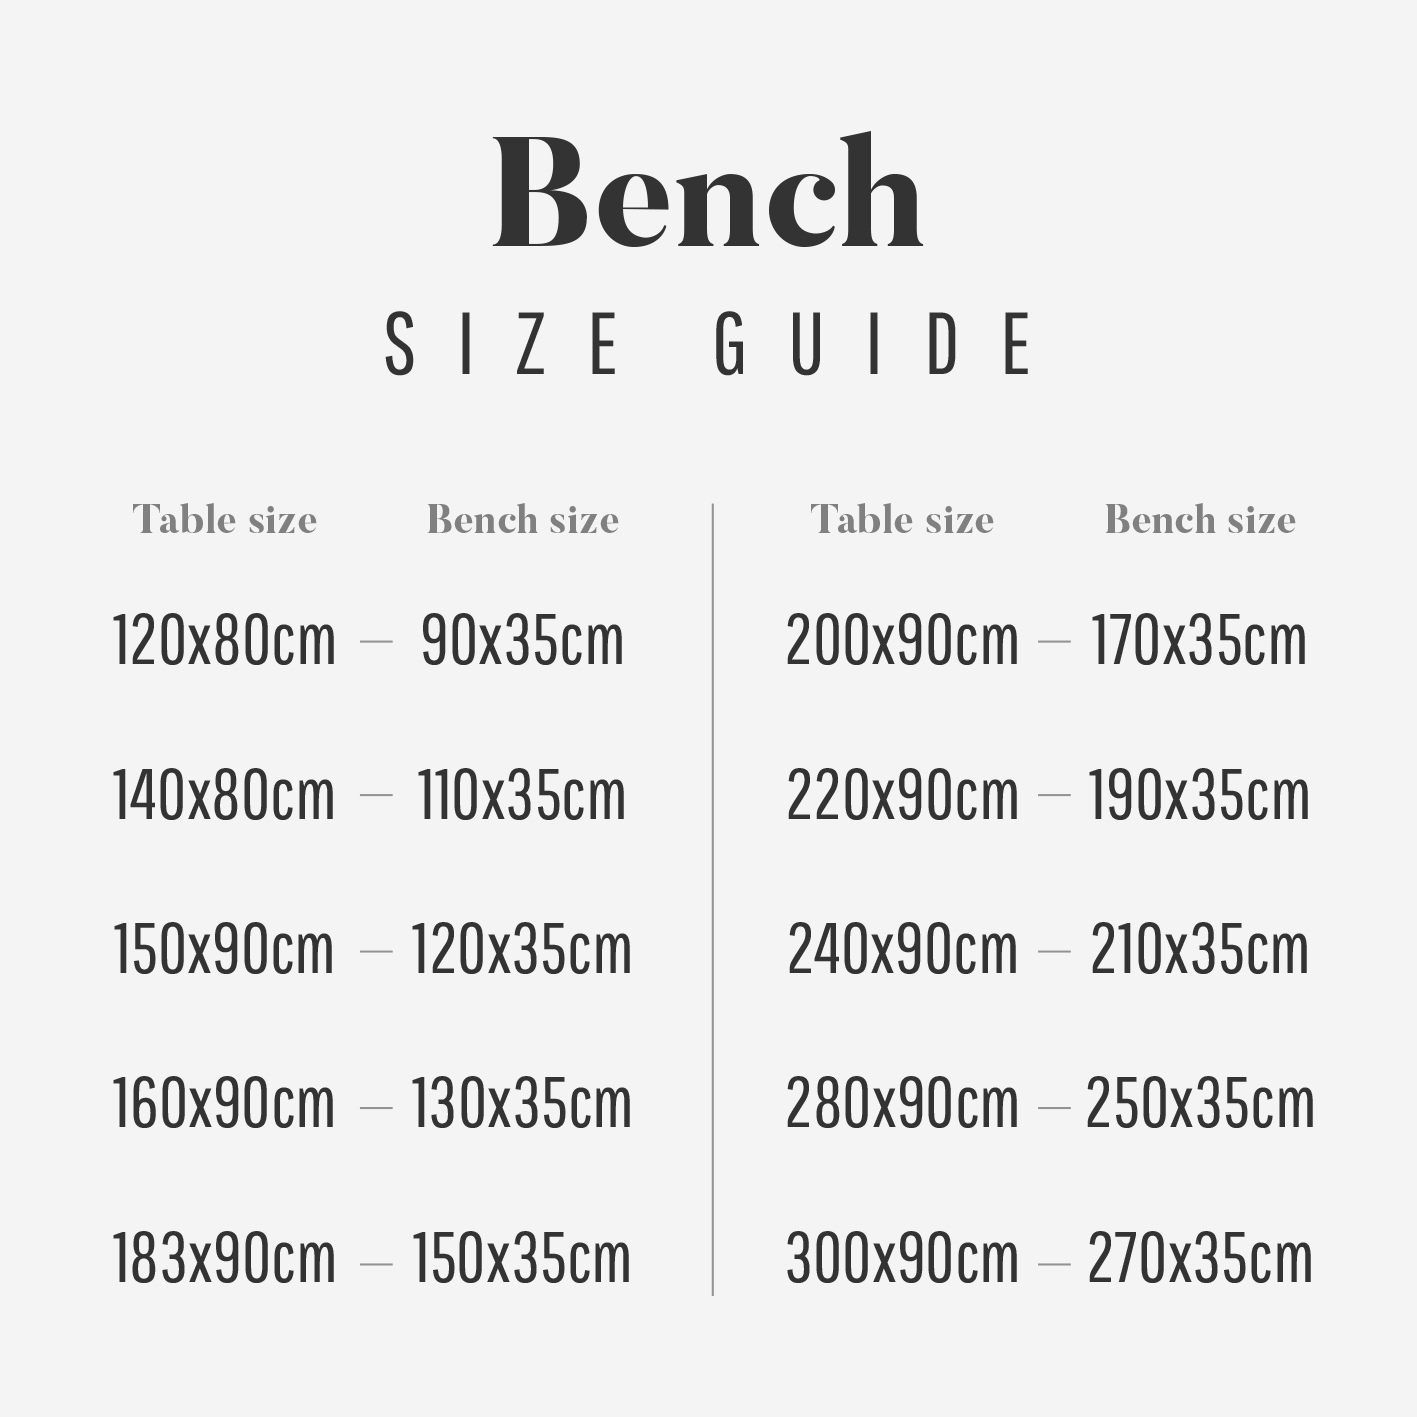 Bench Size Guide